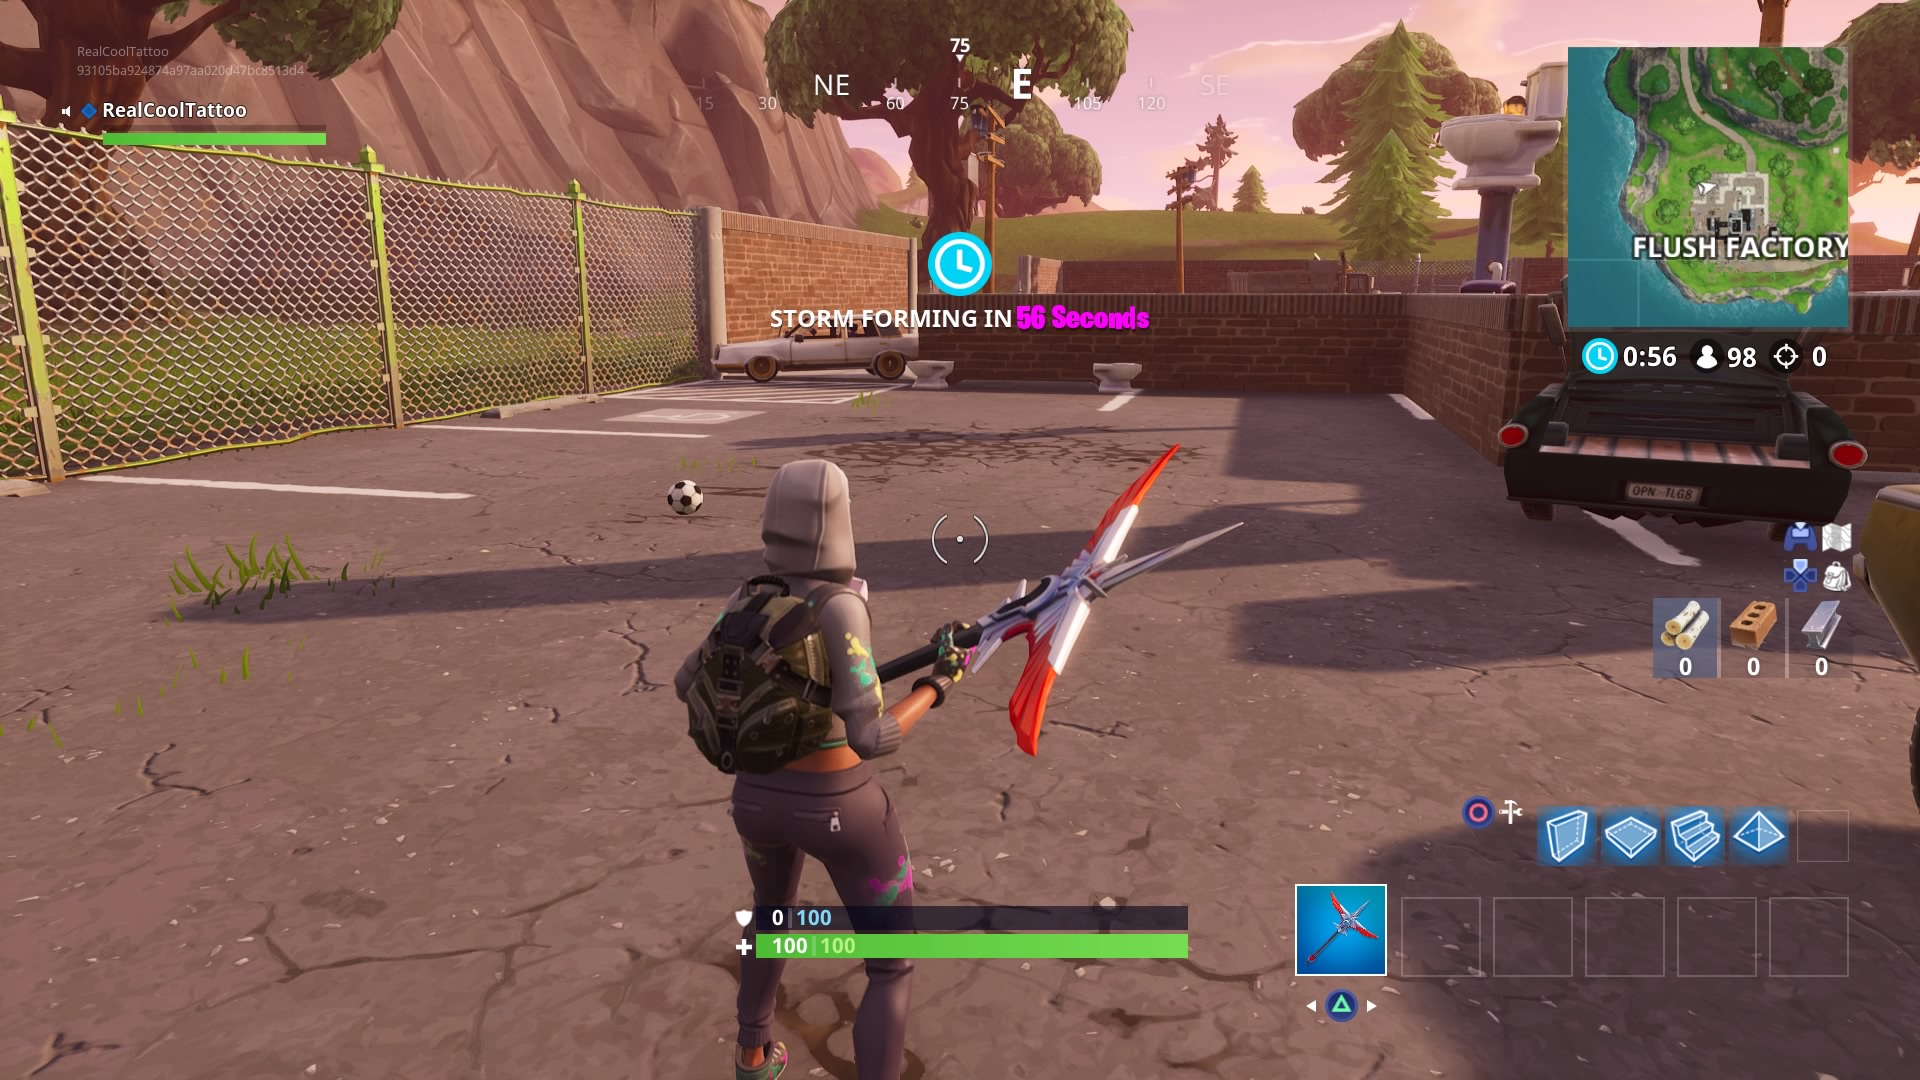 Soccer Pitches Fortnite Fatal Fields Fortnite Score On Different Pitches Where To Find All The Football Soccer Fields In Fortnite Gg365